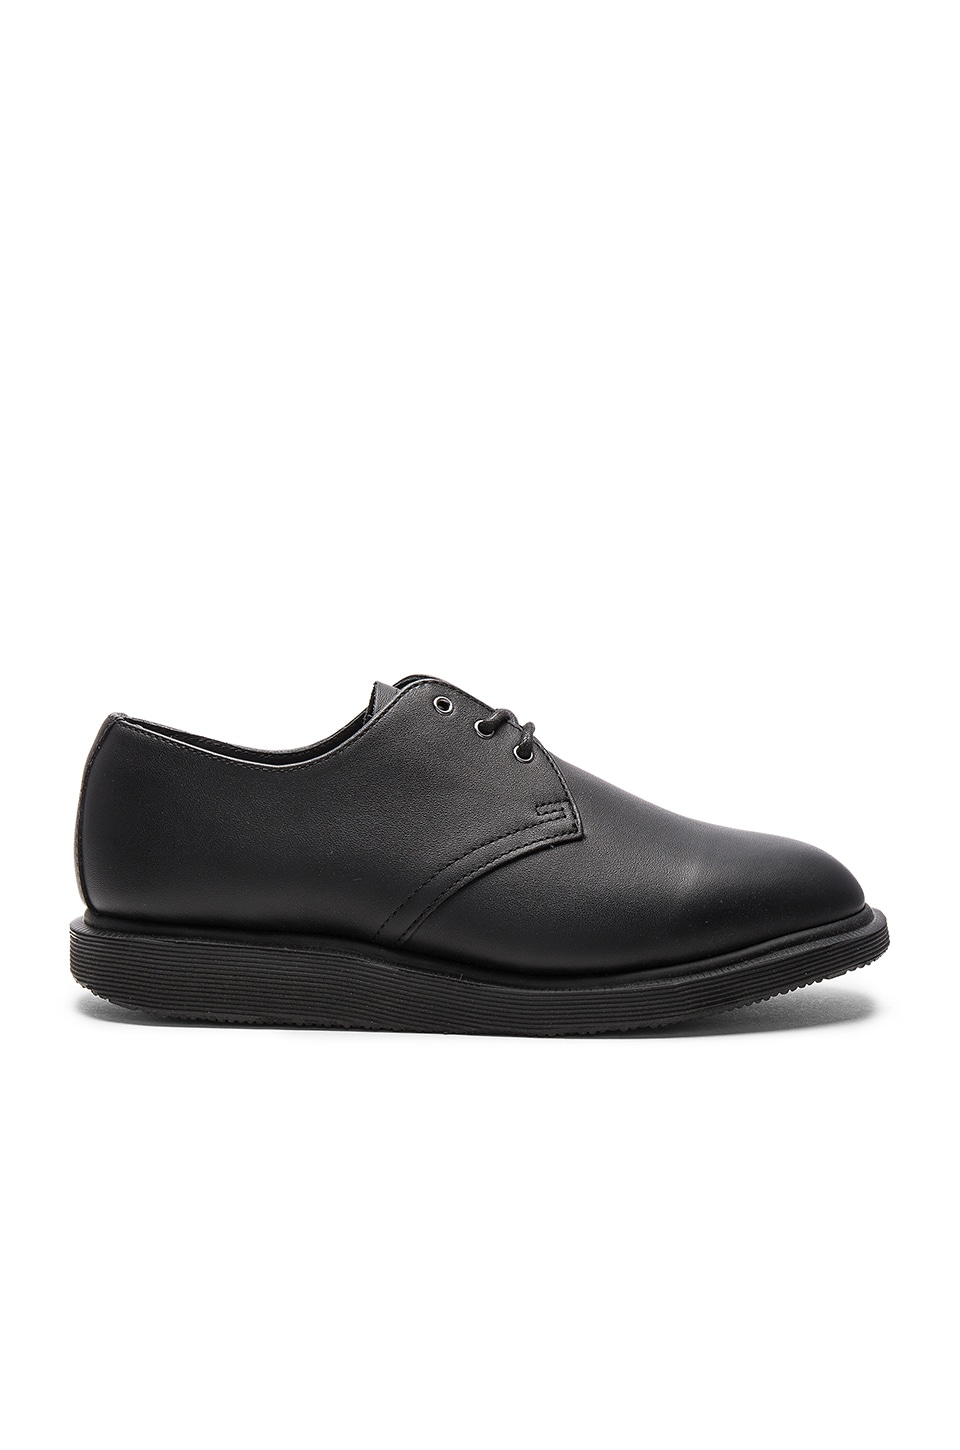 Torriano 3 Eye Shoe